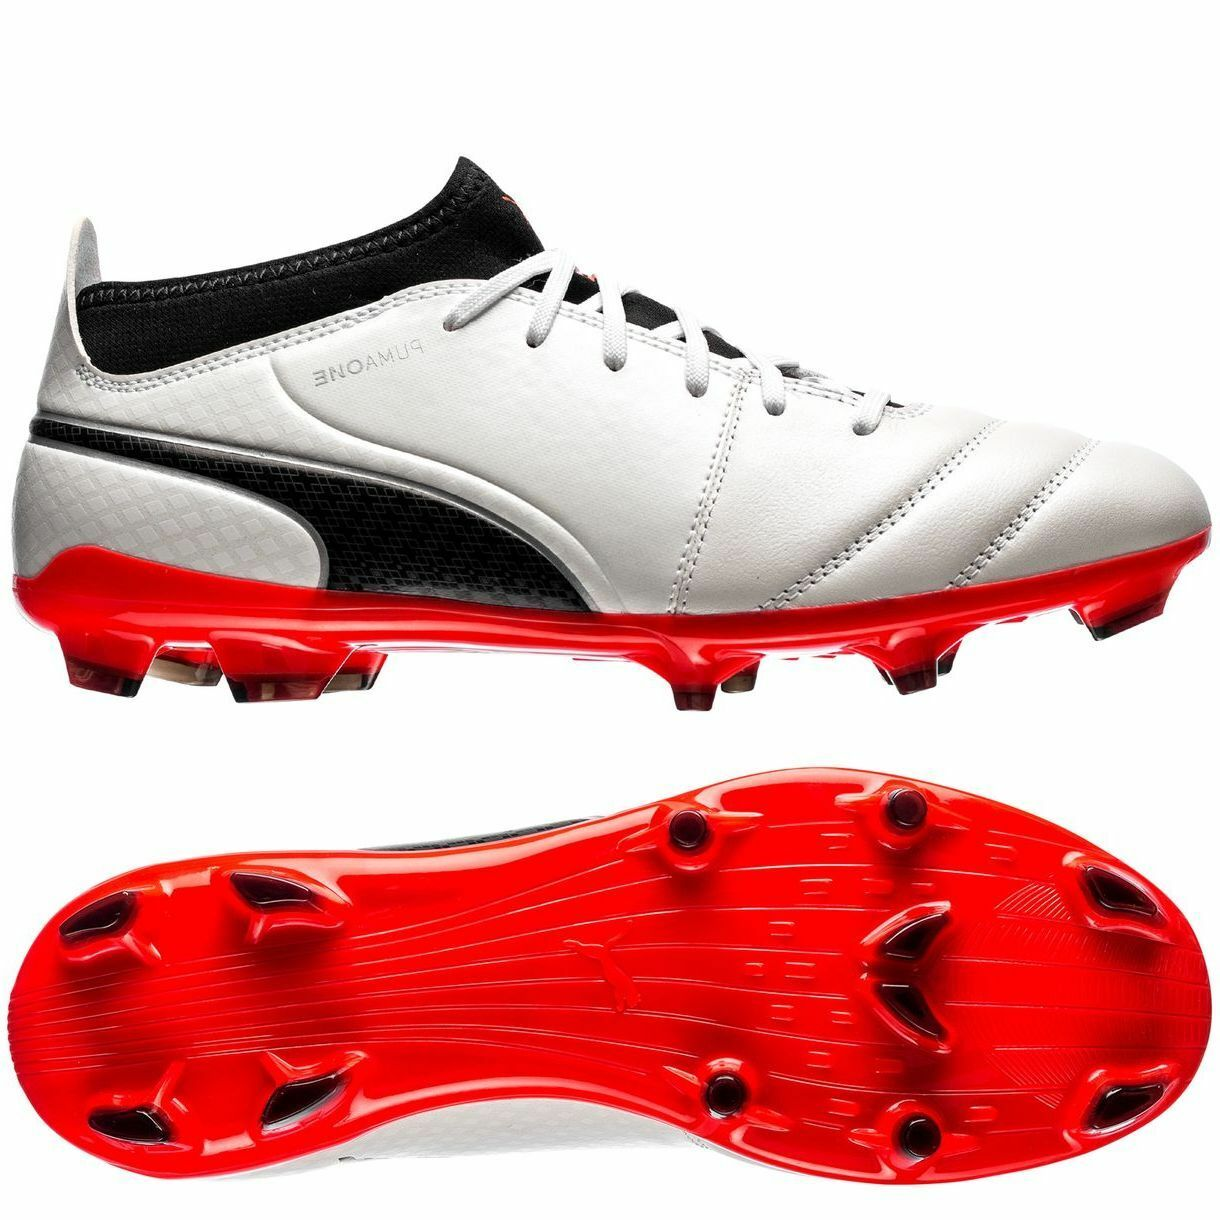 Puma ONE 17.3 FG 2017 Soccer shoes Brand New White   Red   Black